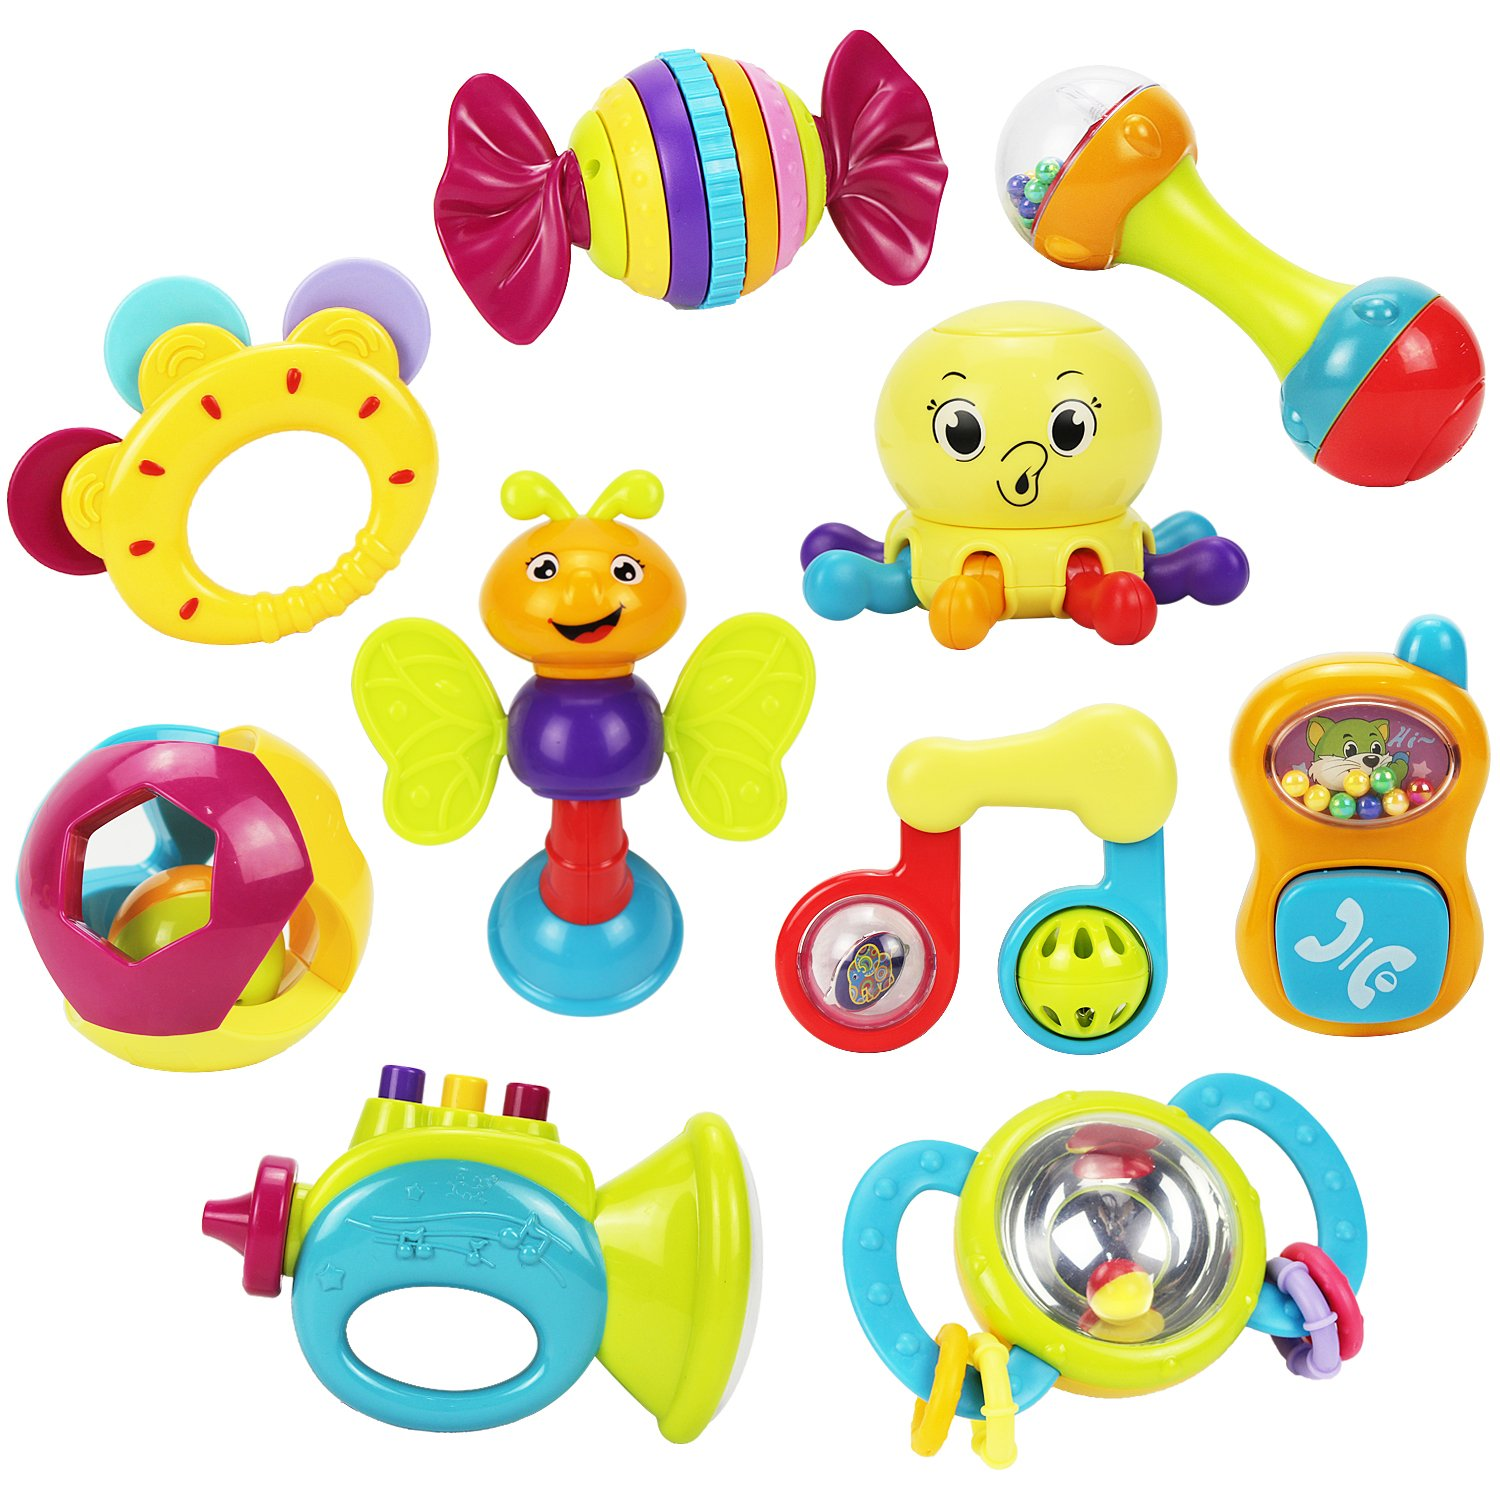 Teether toys of different textures for baby